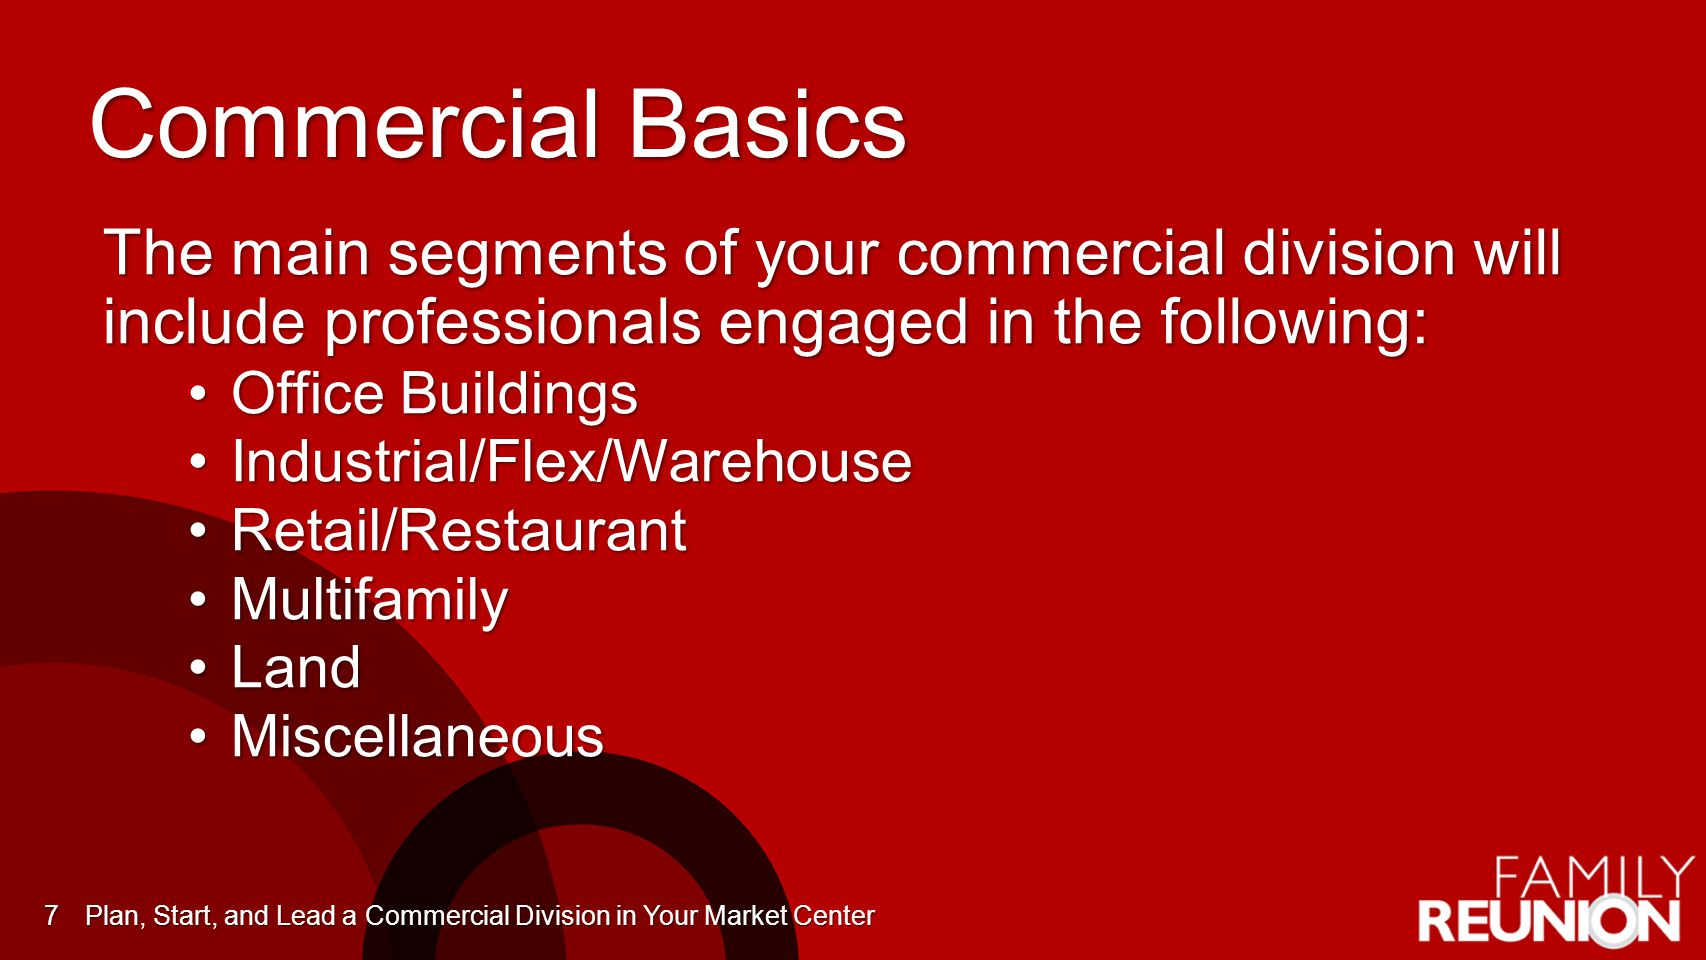 Commercial Basics The main segments of your commercial division will include professionals engaged in the following: Office BuildingsOffice Buildings